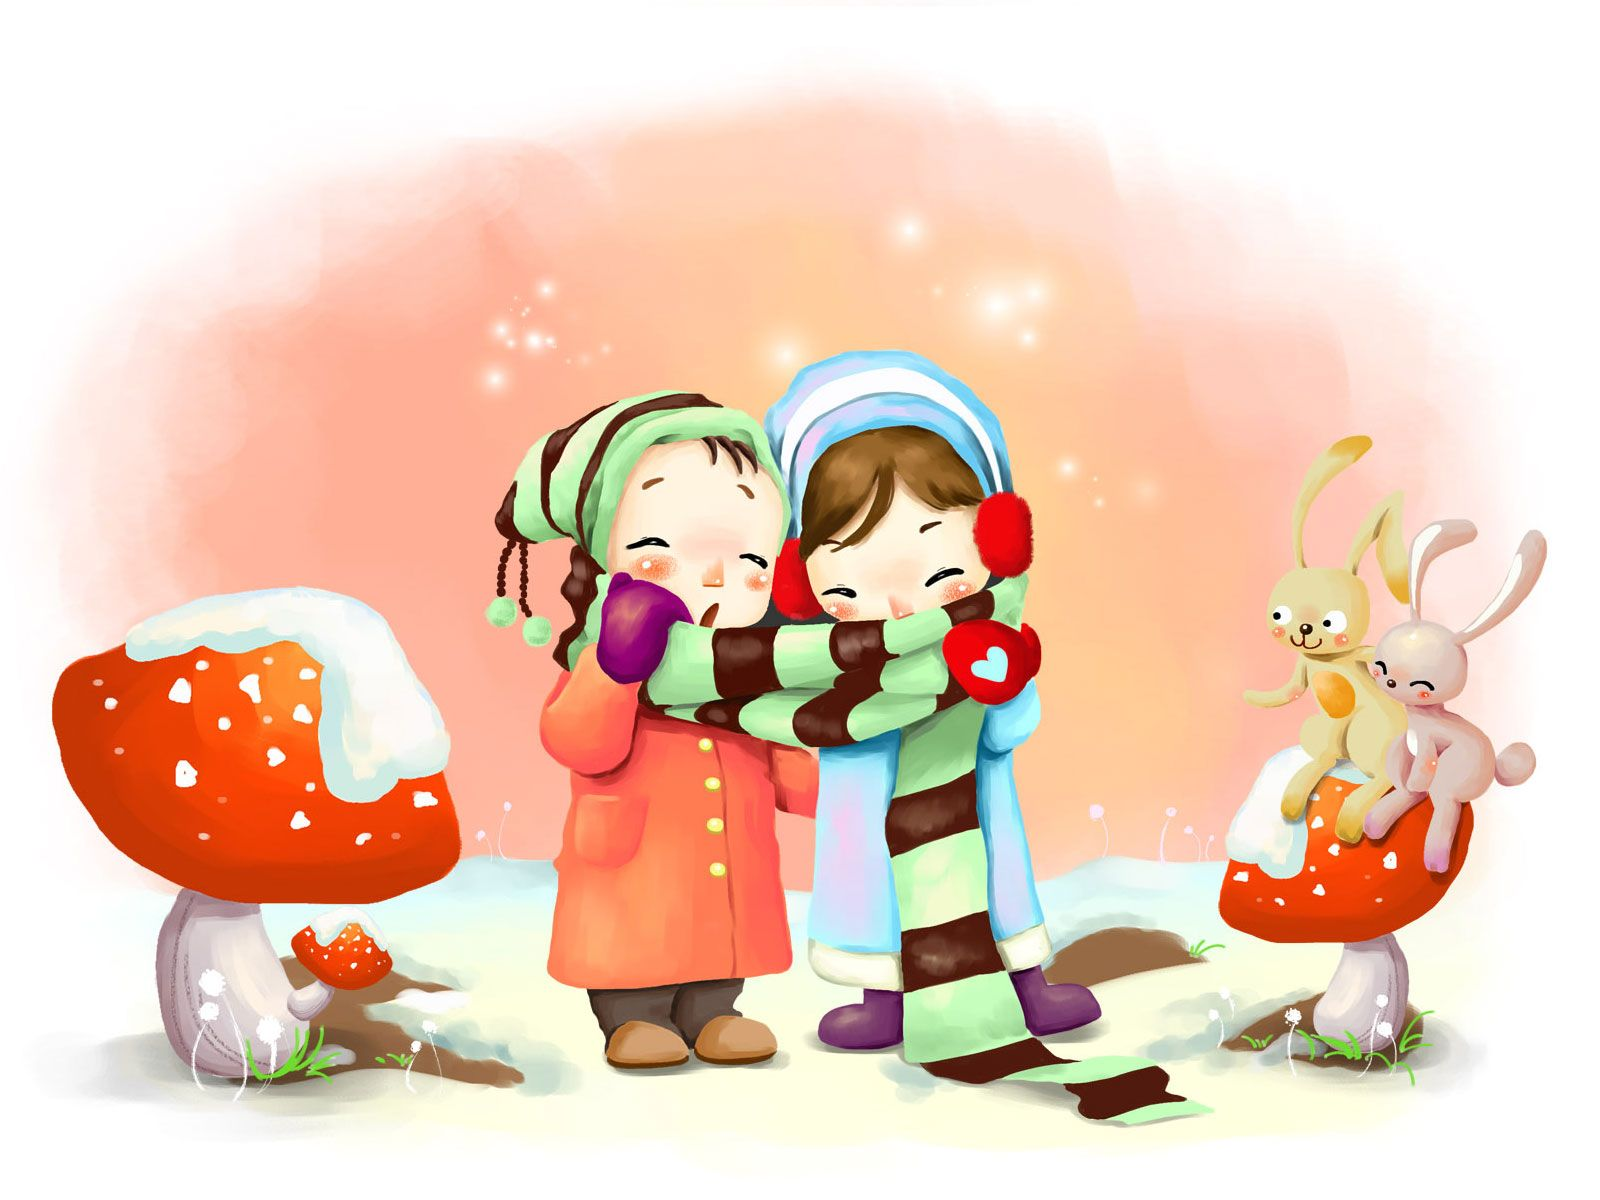 Cute Cartoon Wallpapers Top Free Cute Cartoon Backgrounds